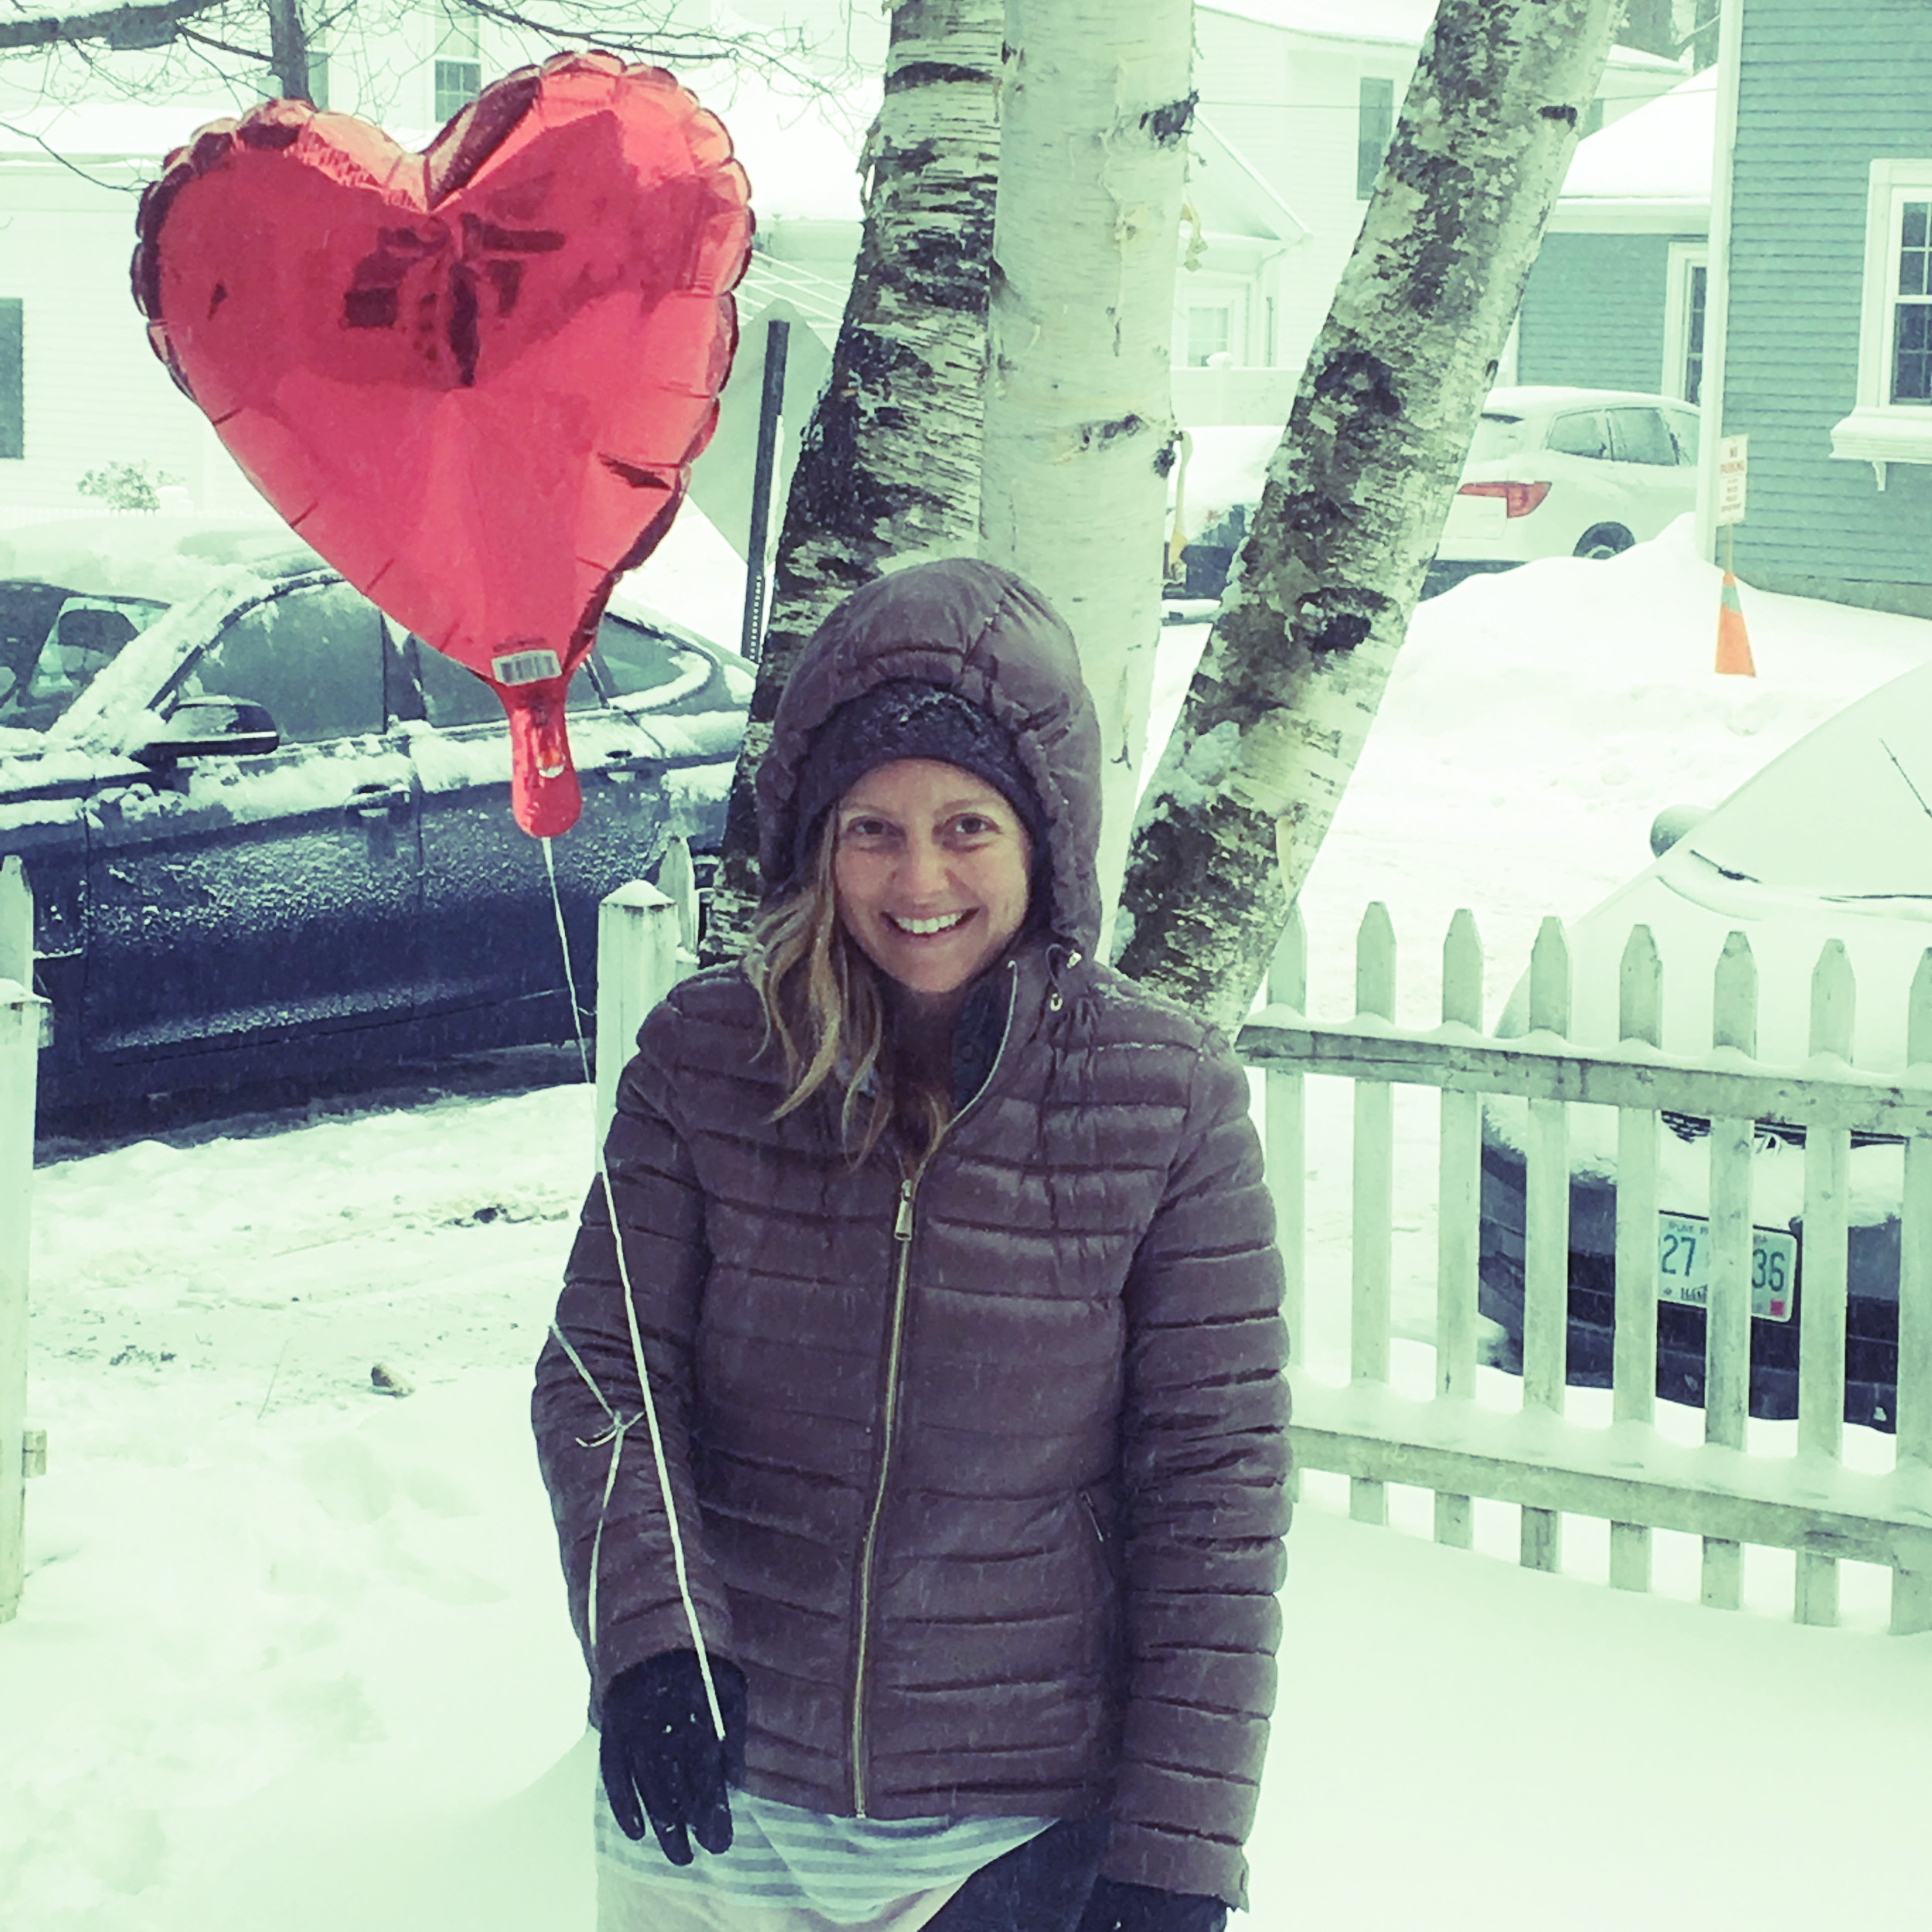 Stomping in the snow with a heart shaped balloon is exactly what my inner wild child was begging me for on this cold winter day, so I embraced it!